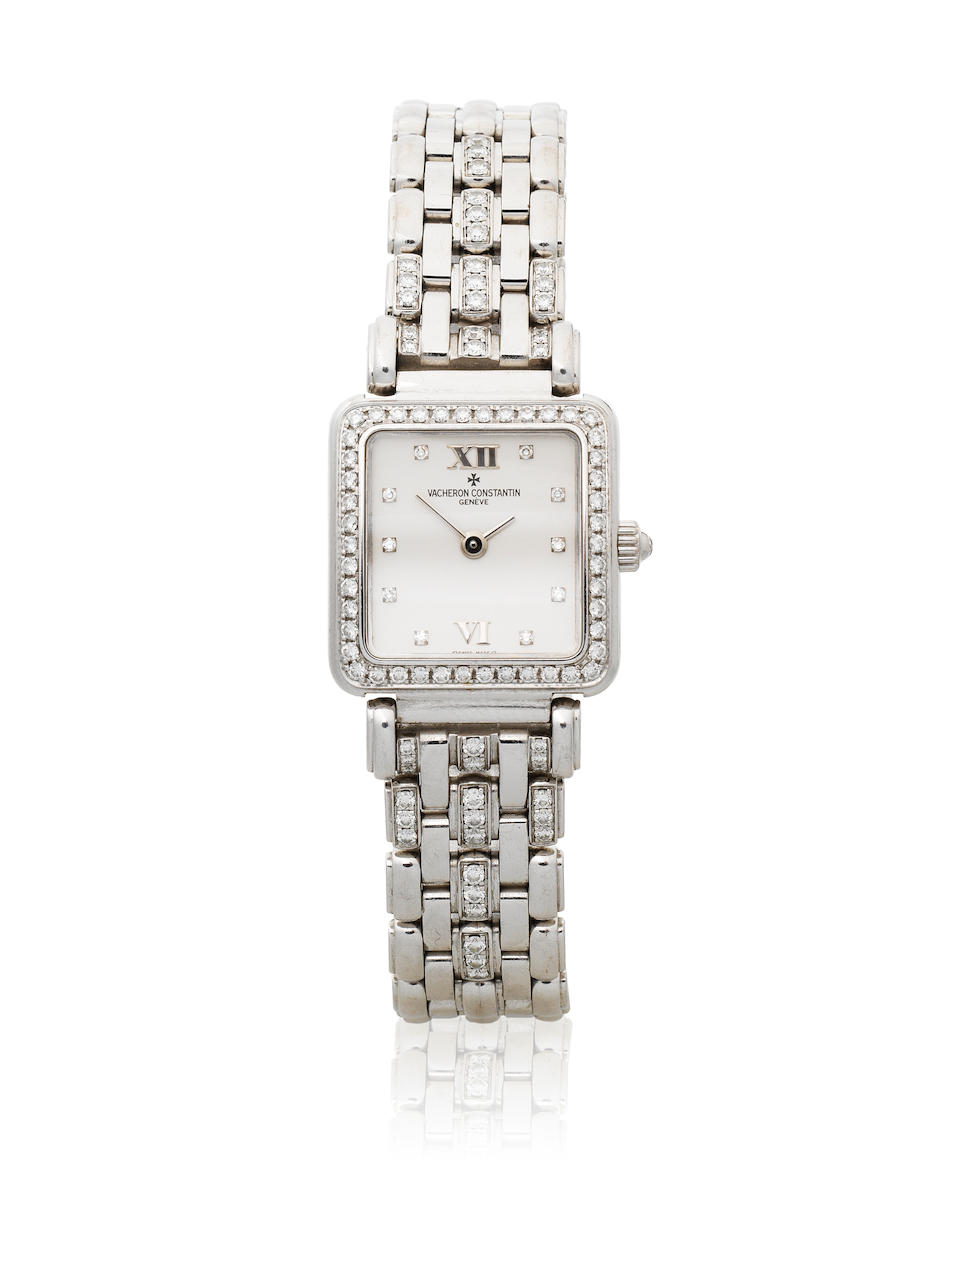 Vacheron & Constantin. A lady's 18K white gold and diamond set manual wind bracelet watch Ref: 10531/326G, Sold 31st December 1998